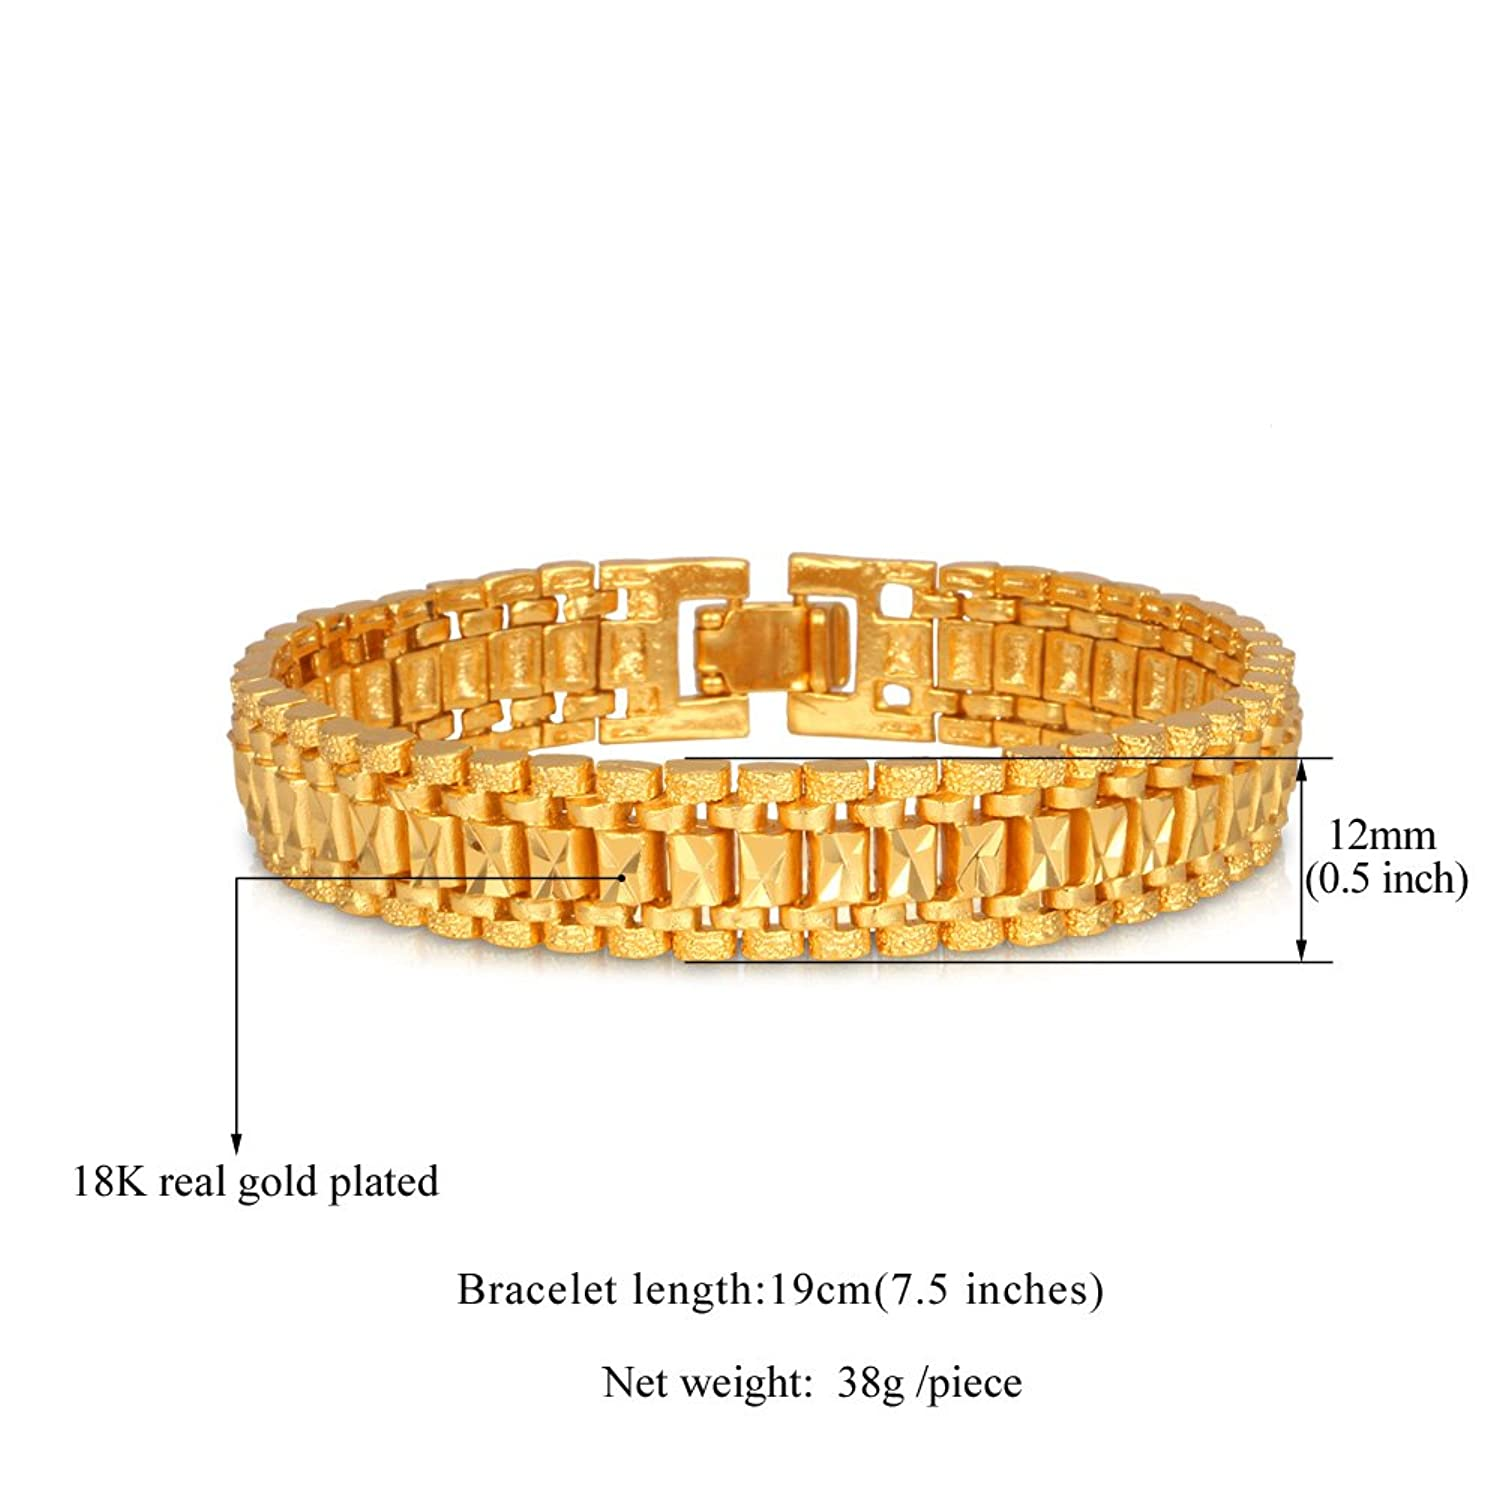 Amazon.com: U7 Jewelry Wrist Chain 18K Yellow Gold Plated Men ...